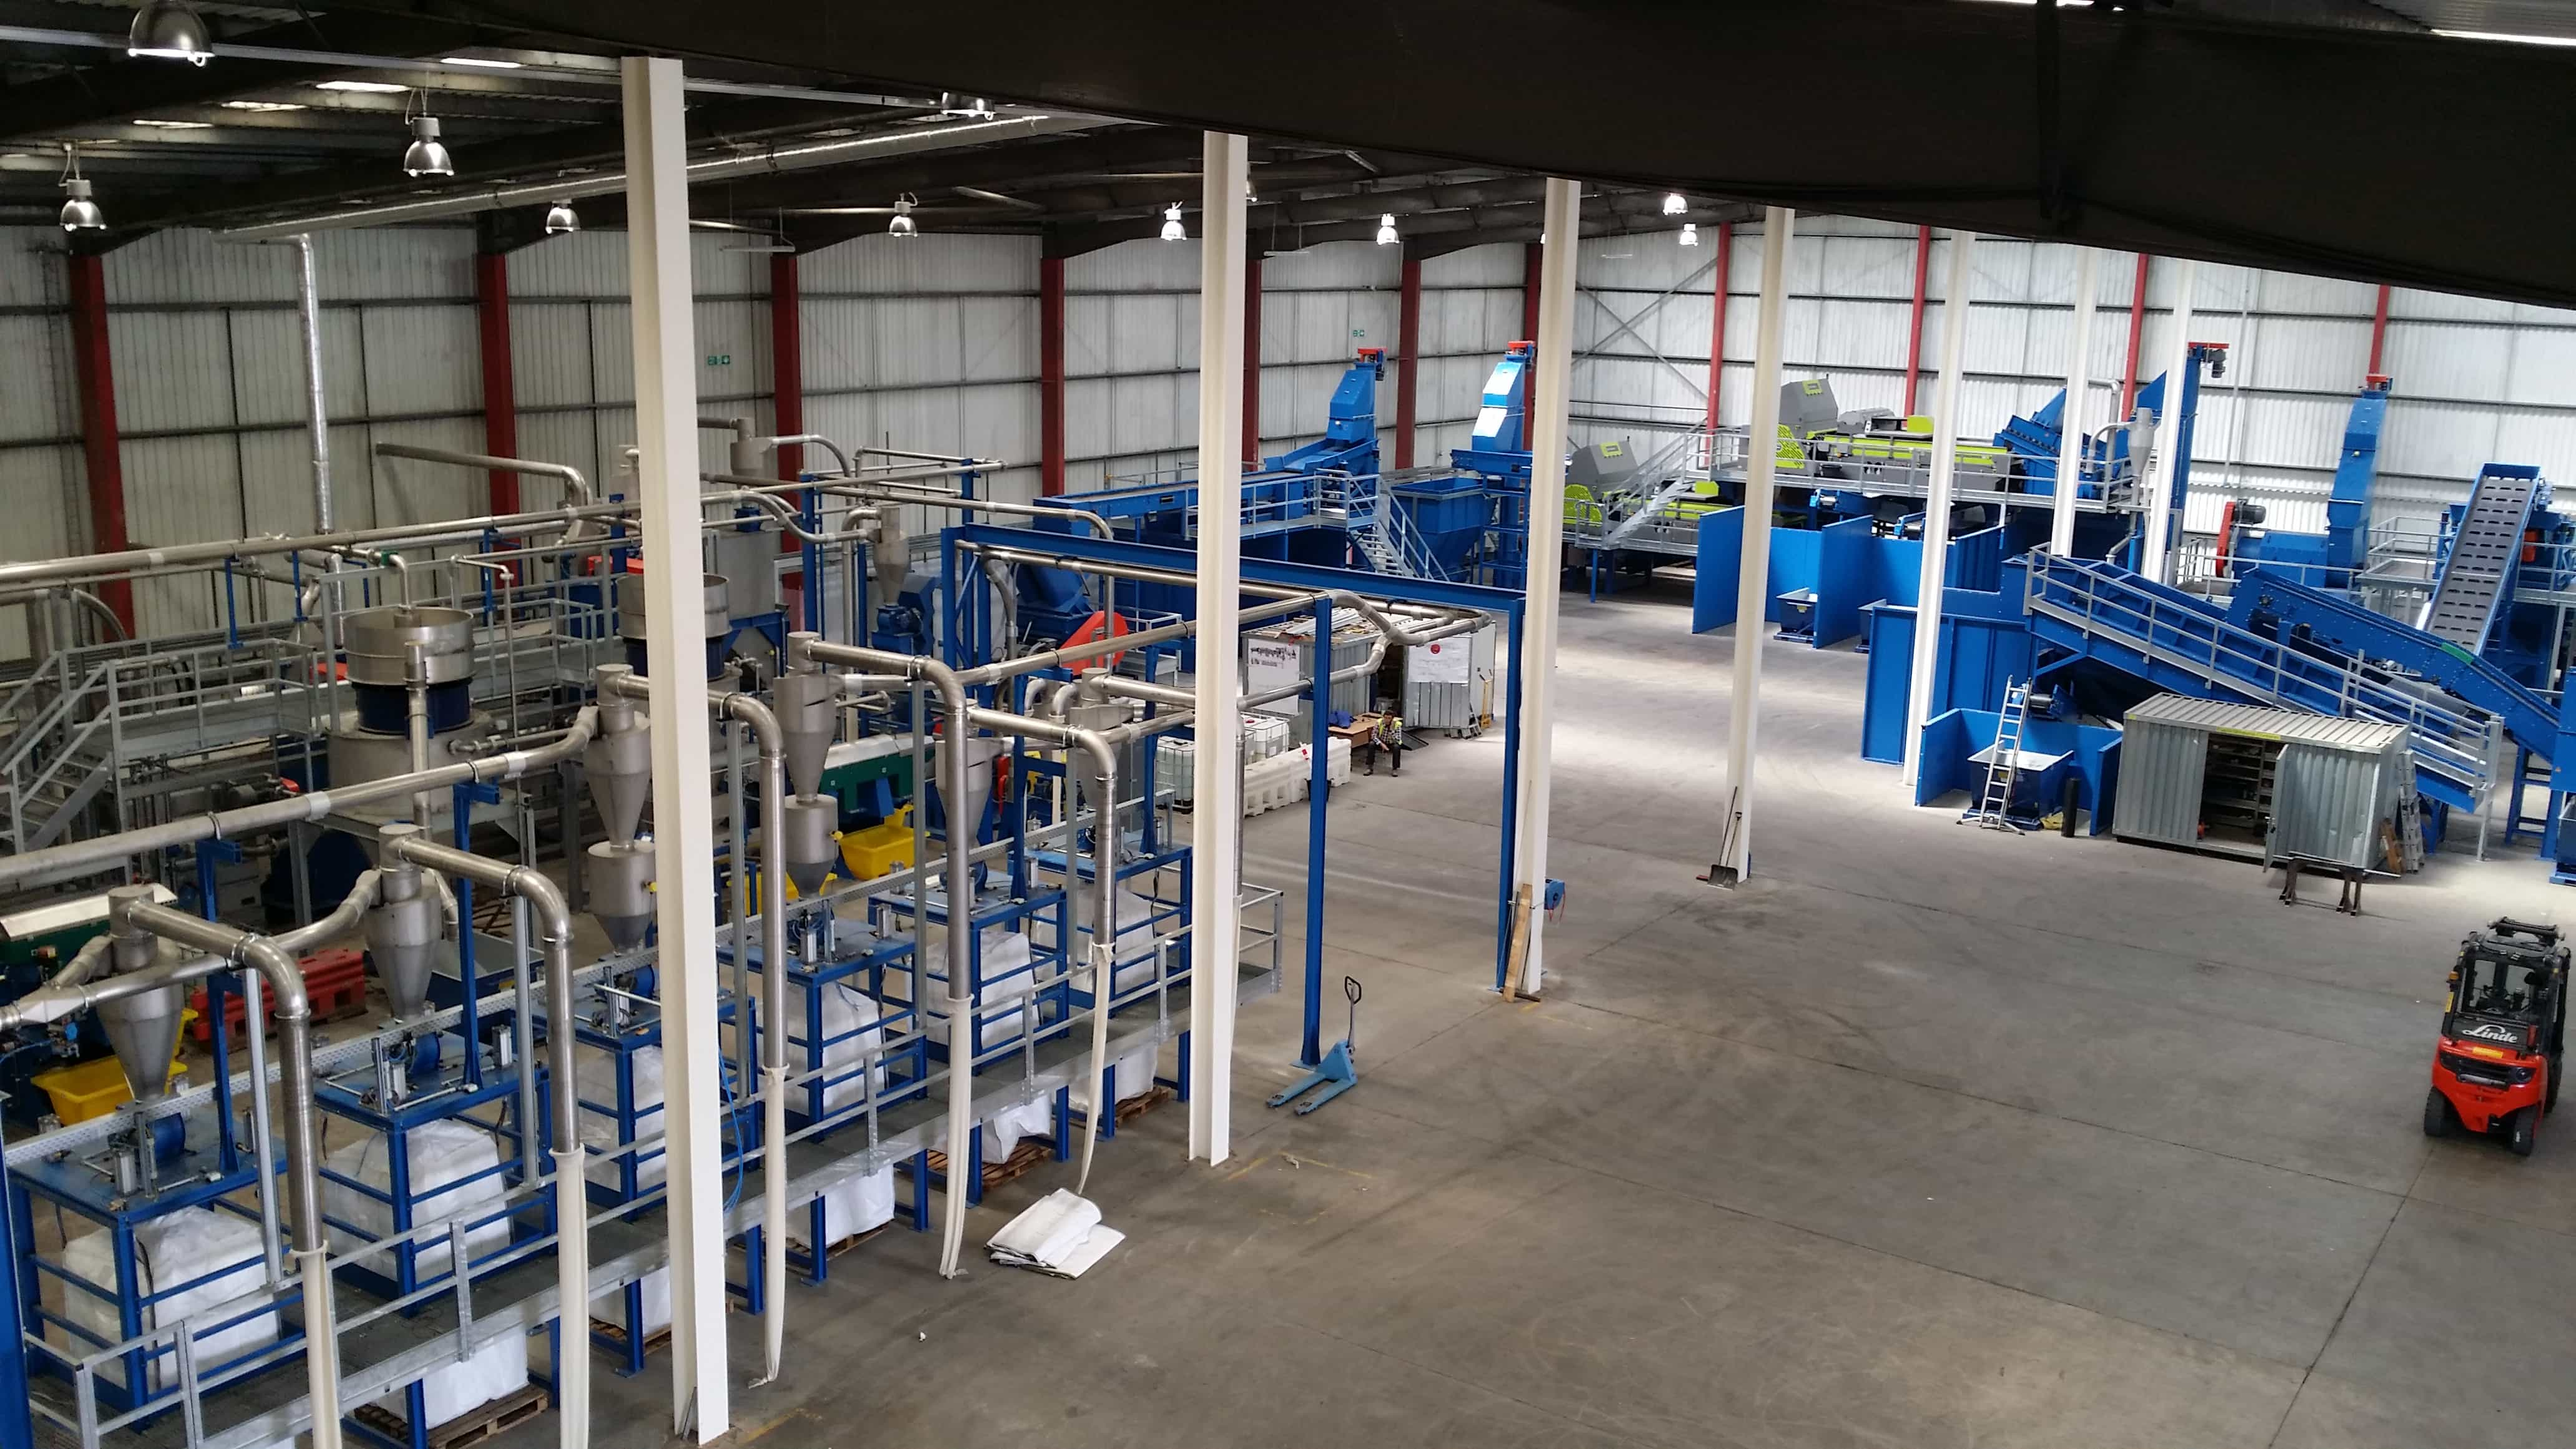 The £6.5 million plant was set up with financial help from LWARB.